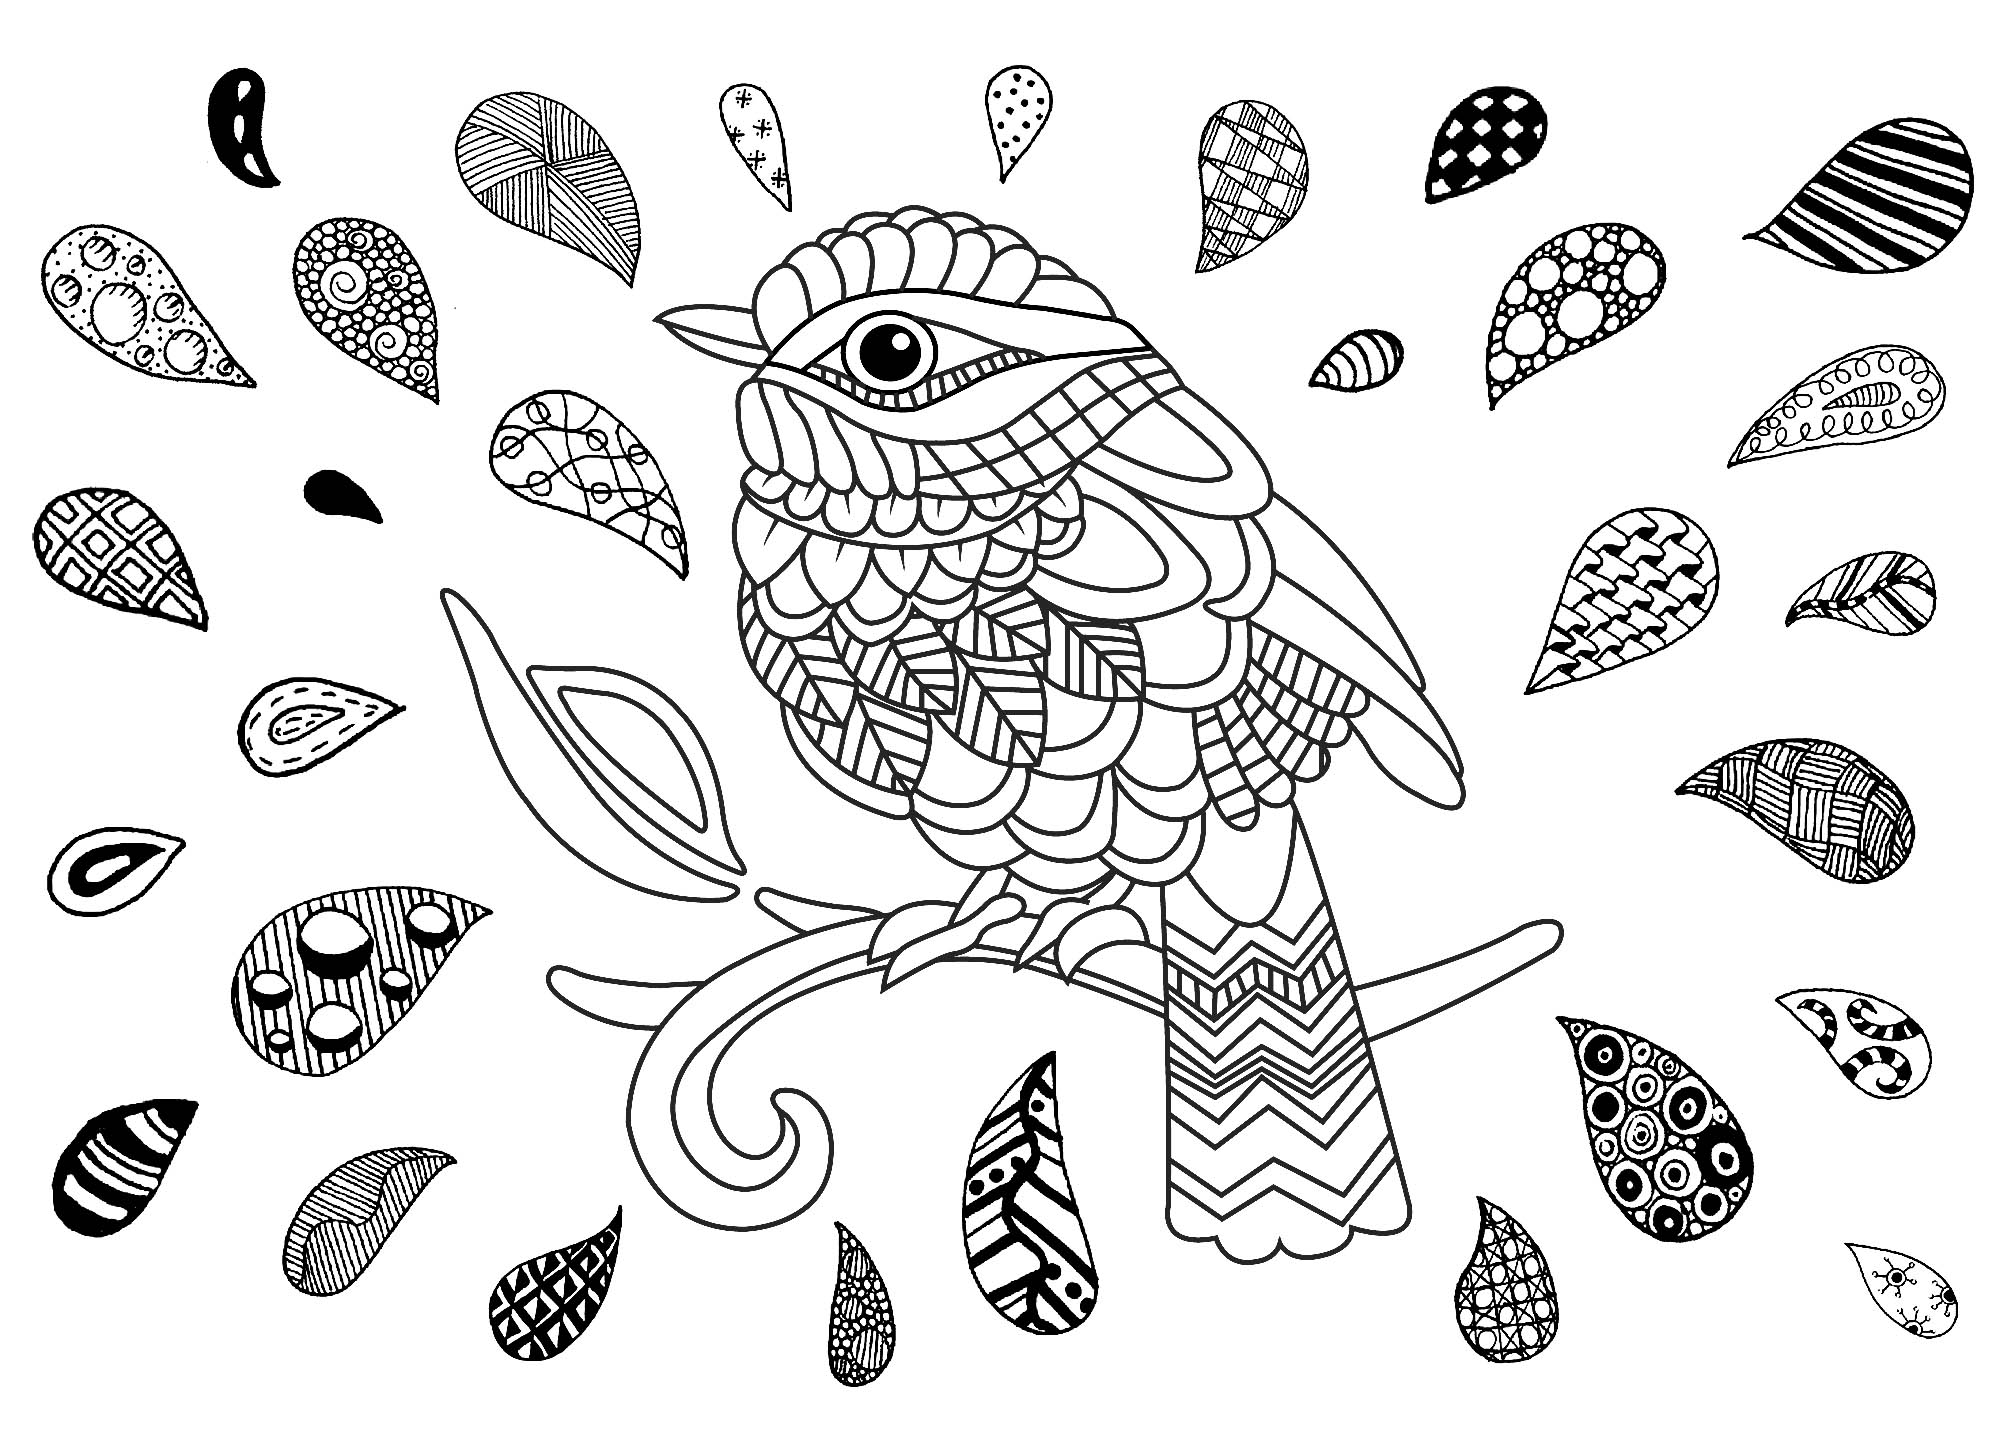 Oiseau & Gouttes Zentangle